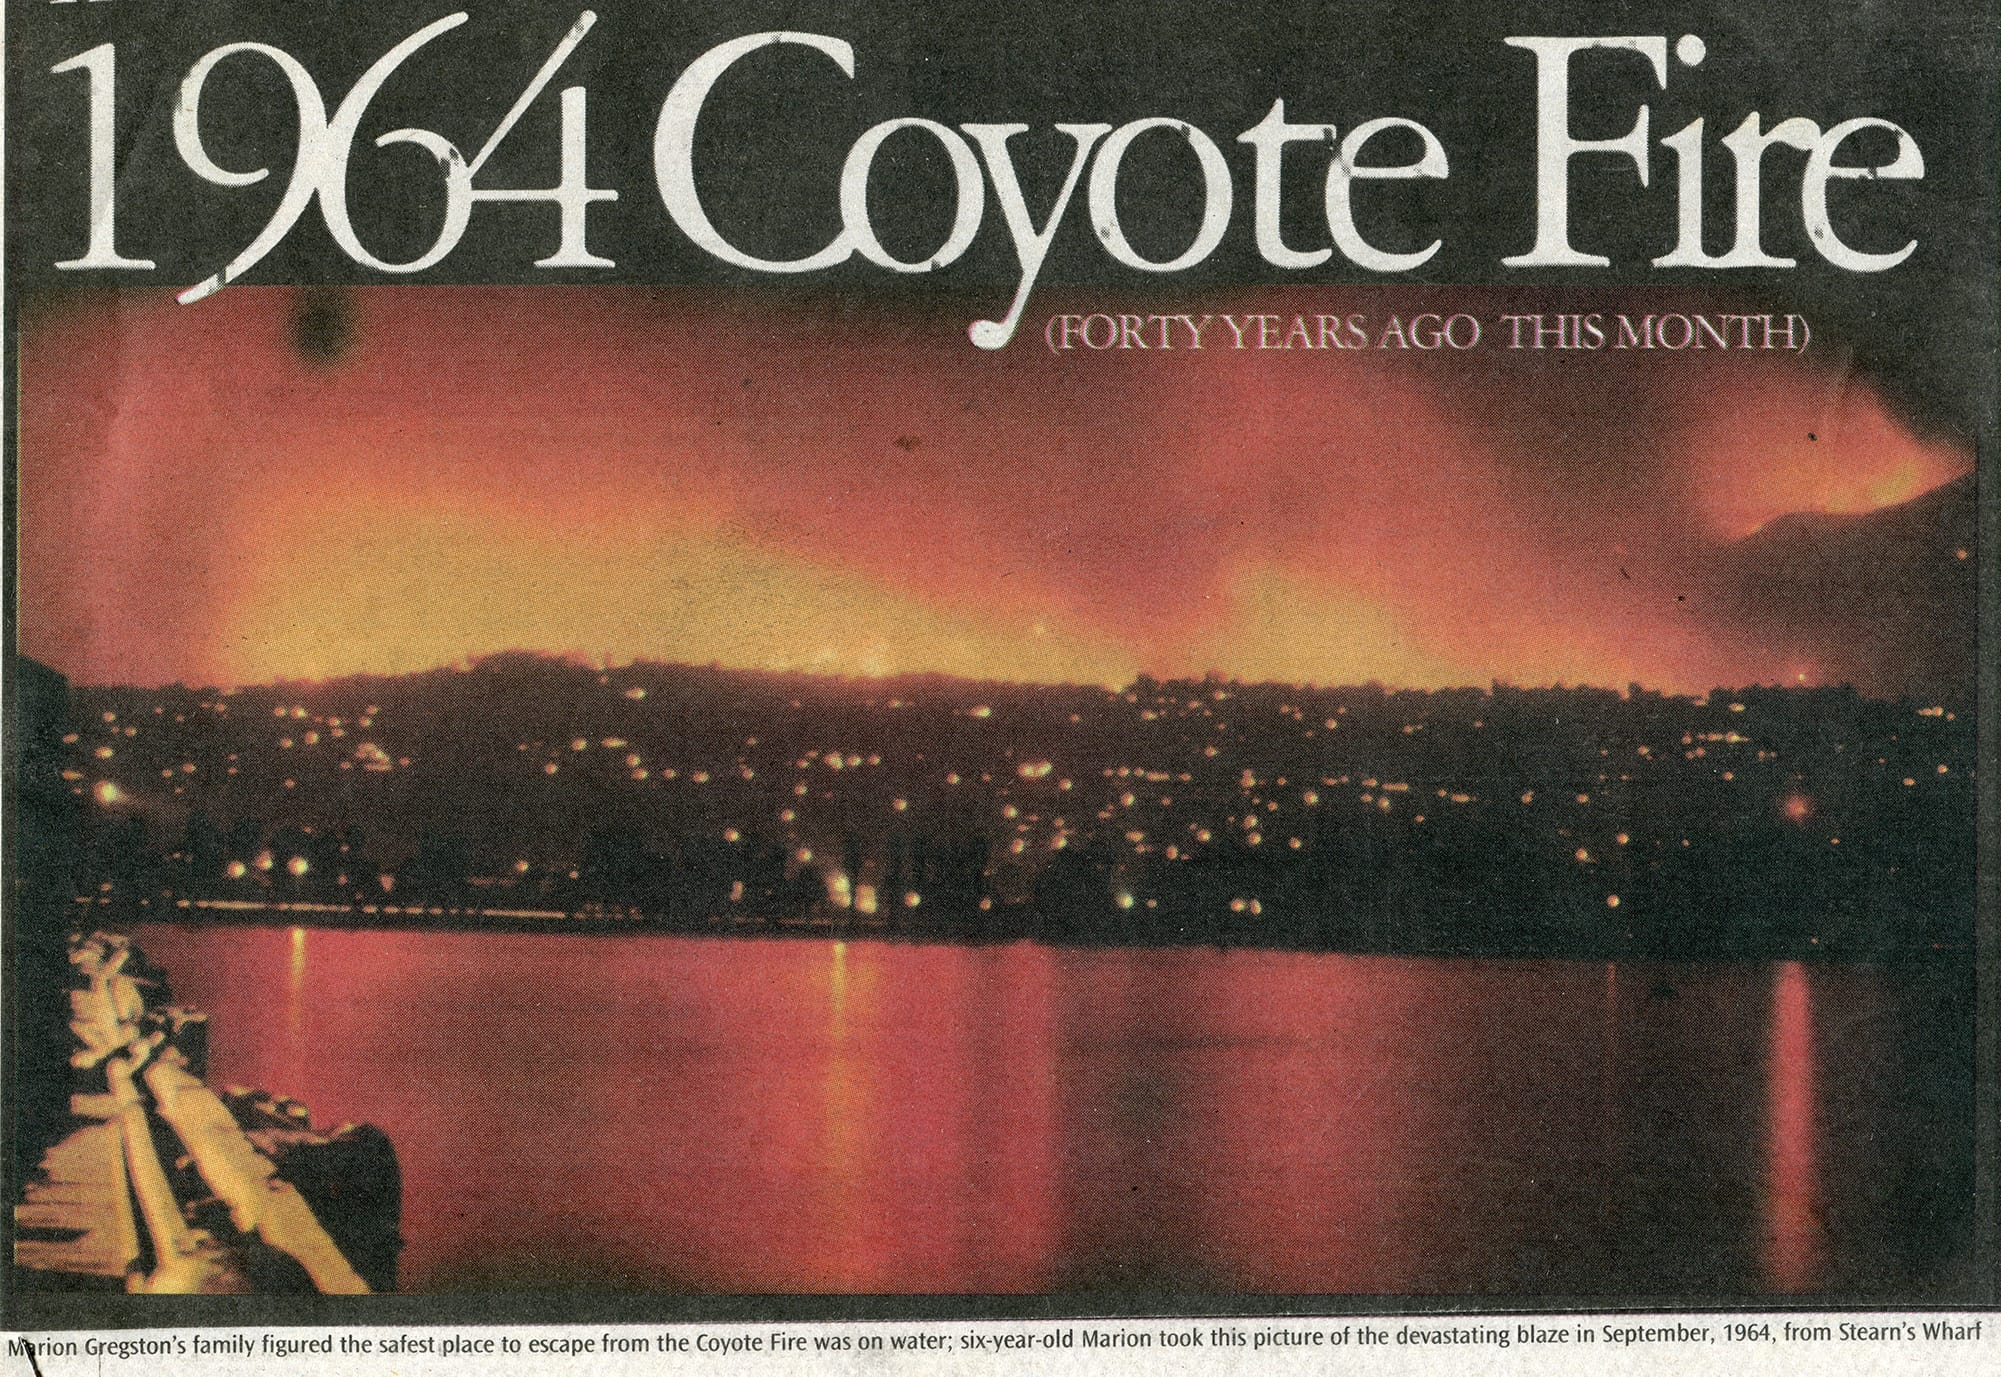 1964 Coyote Fire Anniversary Image